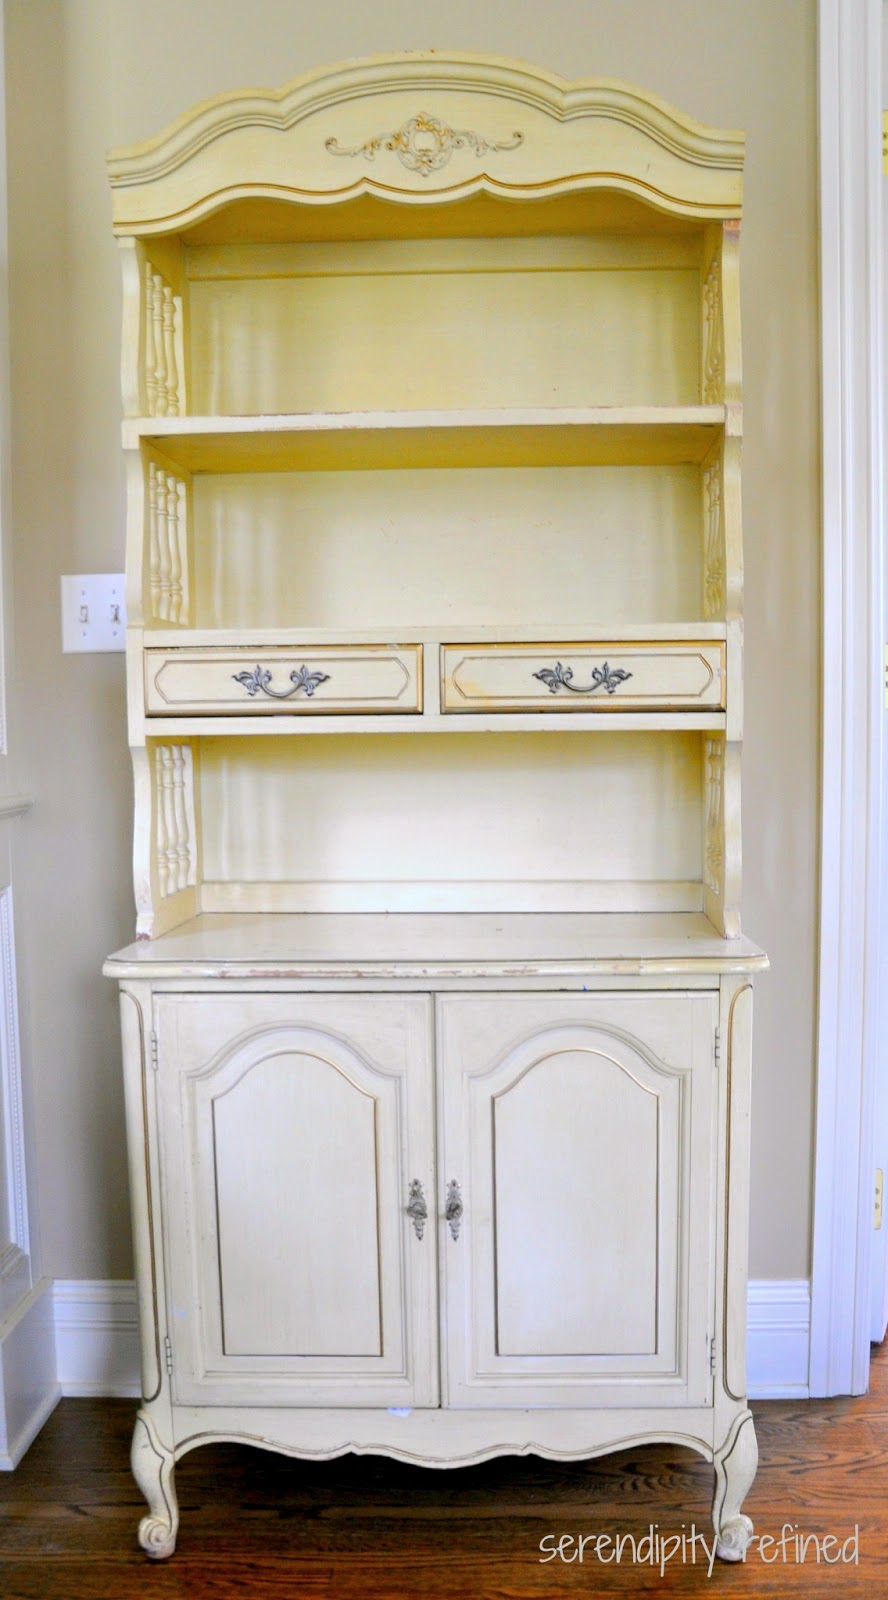 Before And After: La Craie Gray And White French Painted Cabinet Makeover